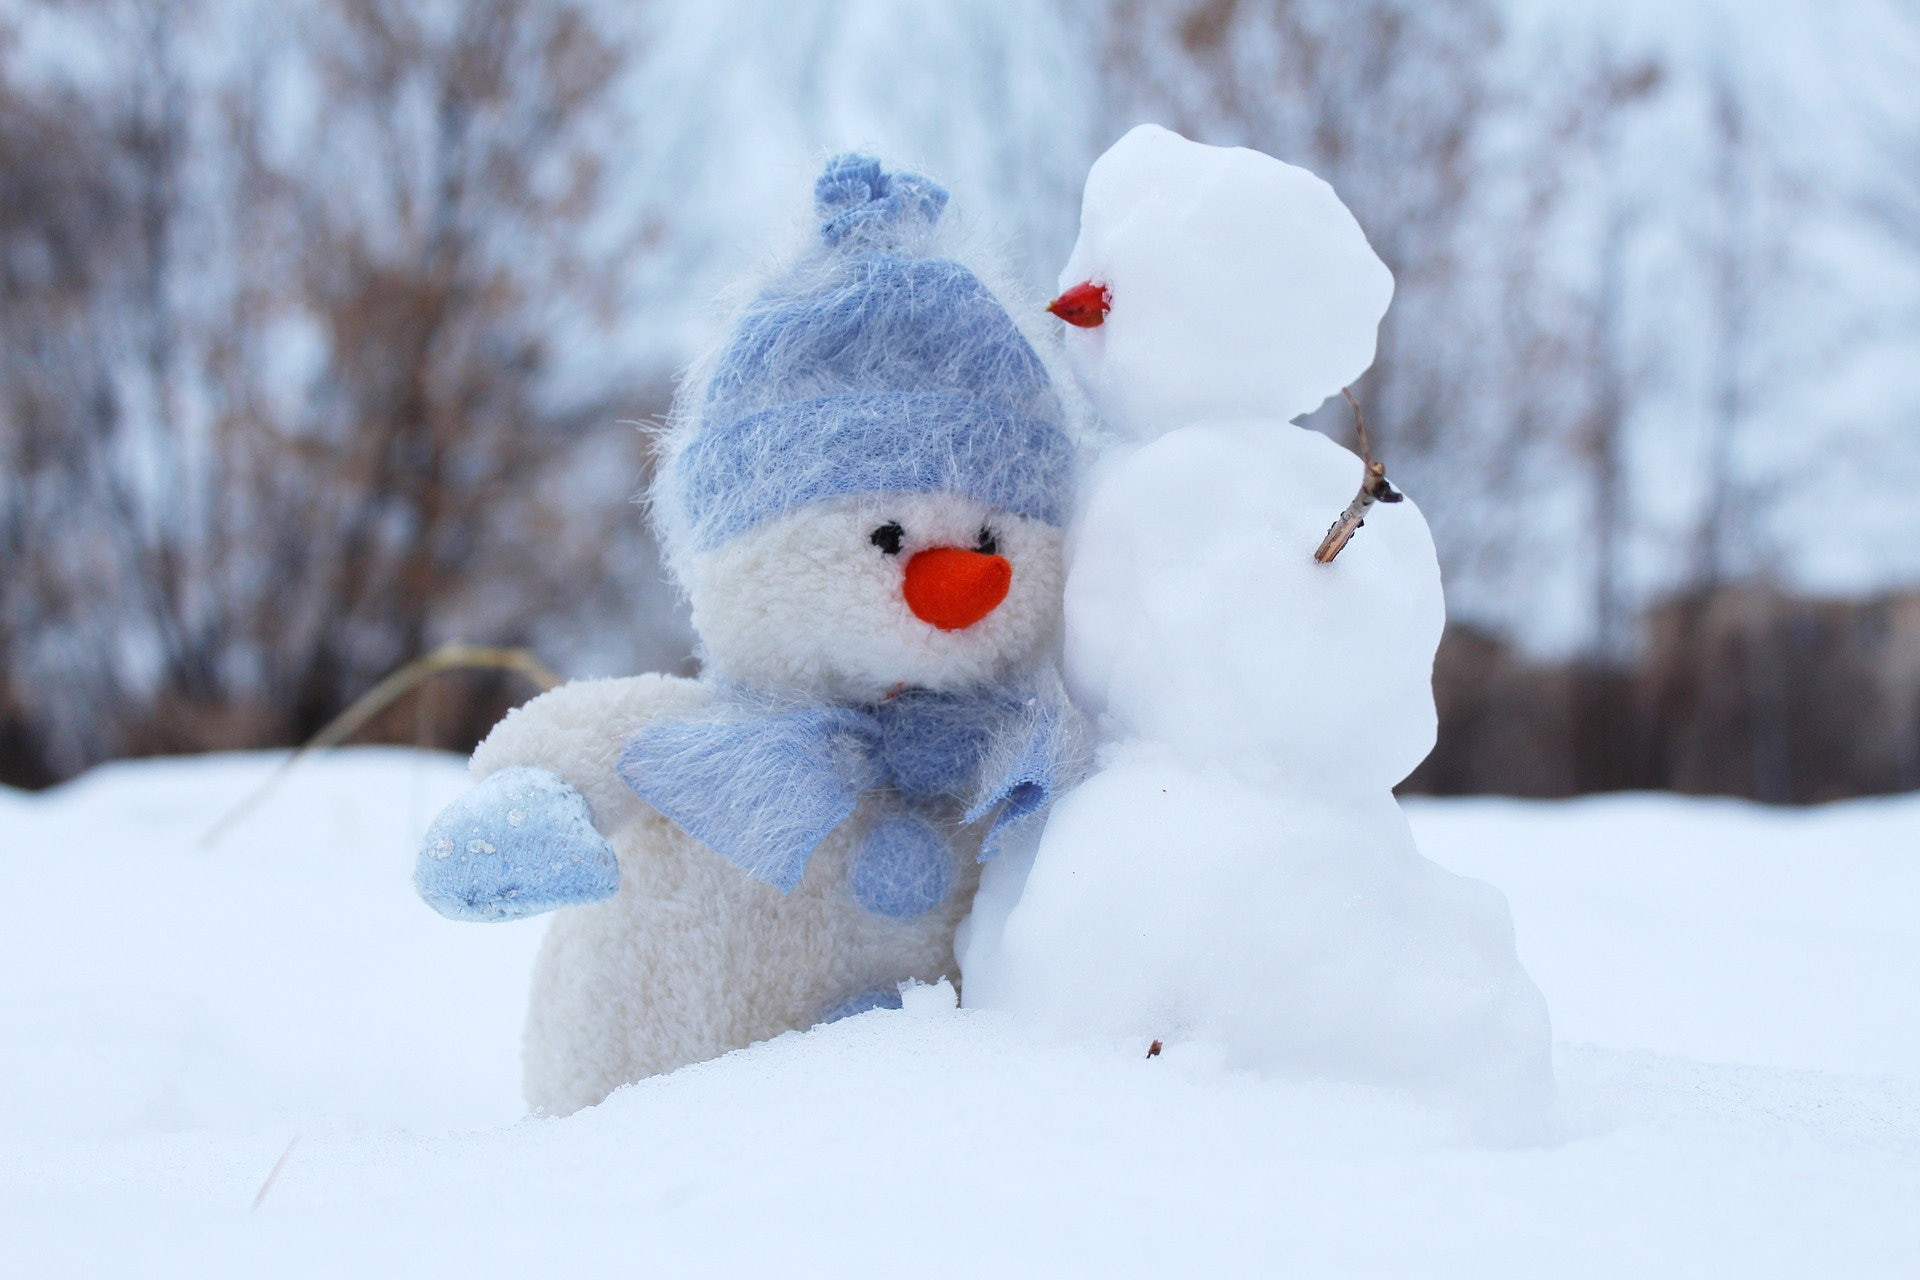 The 11 Best Wintry Quotes From Books To Make You Want To Build A Snowman